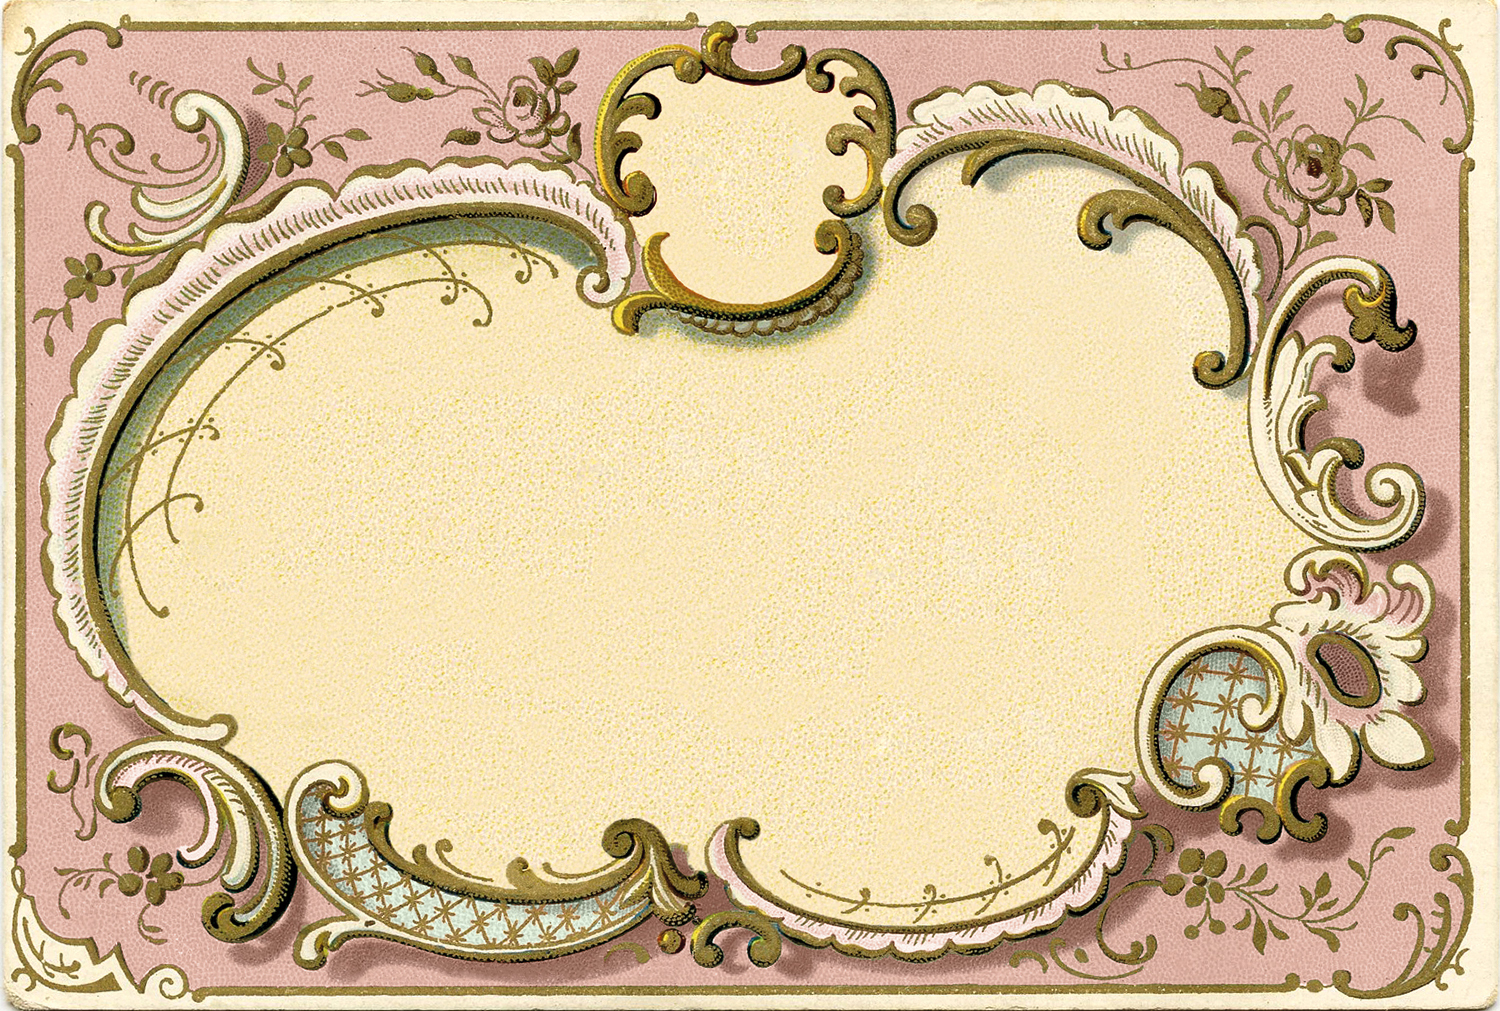 Stunning French Graphic Frame Image